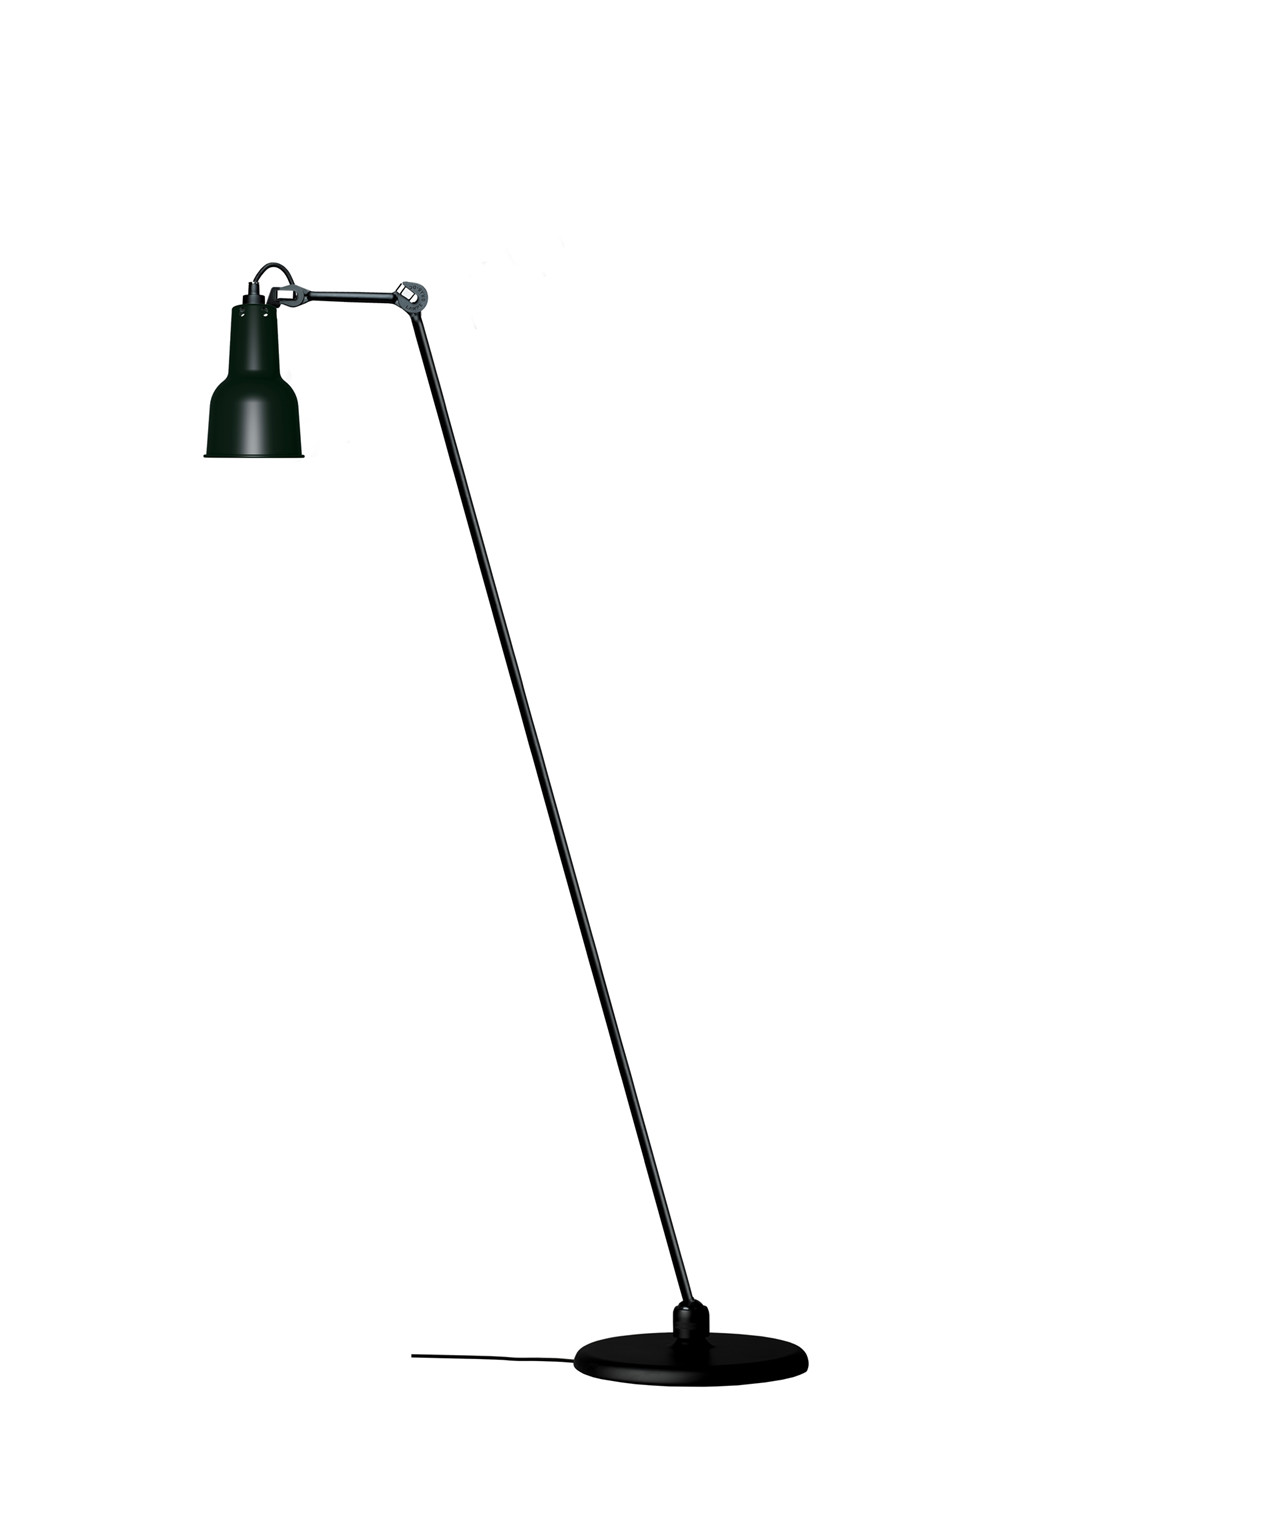 Image of   230 Gulvlampe Sort - Lampe Gras